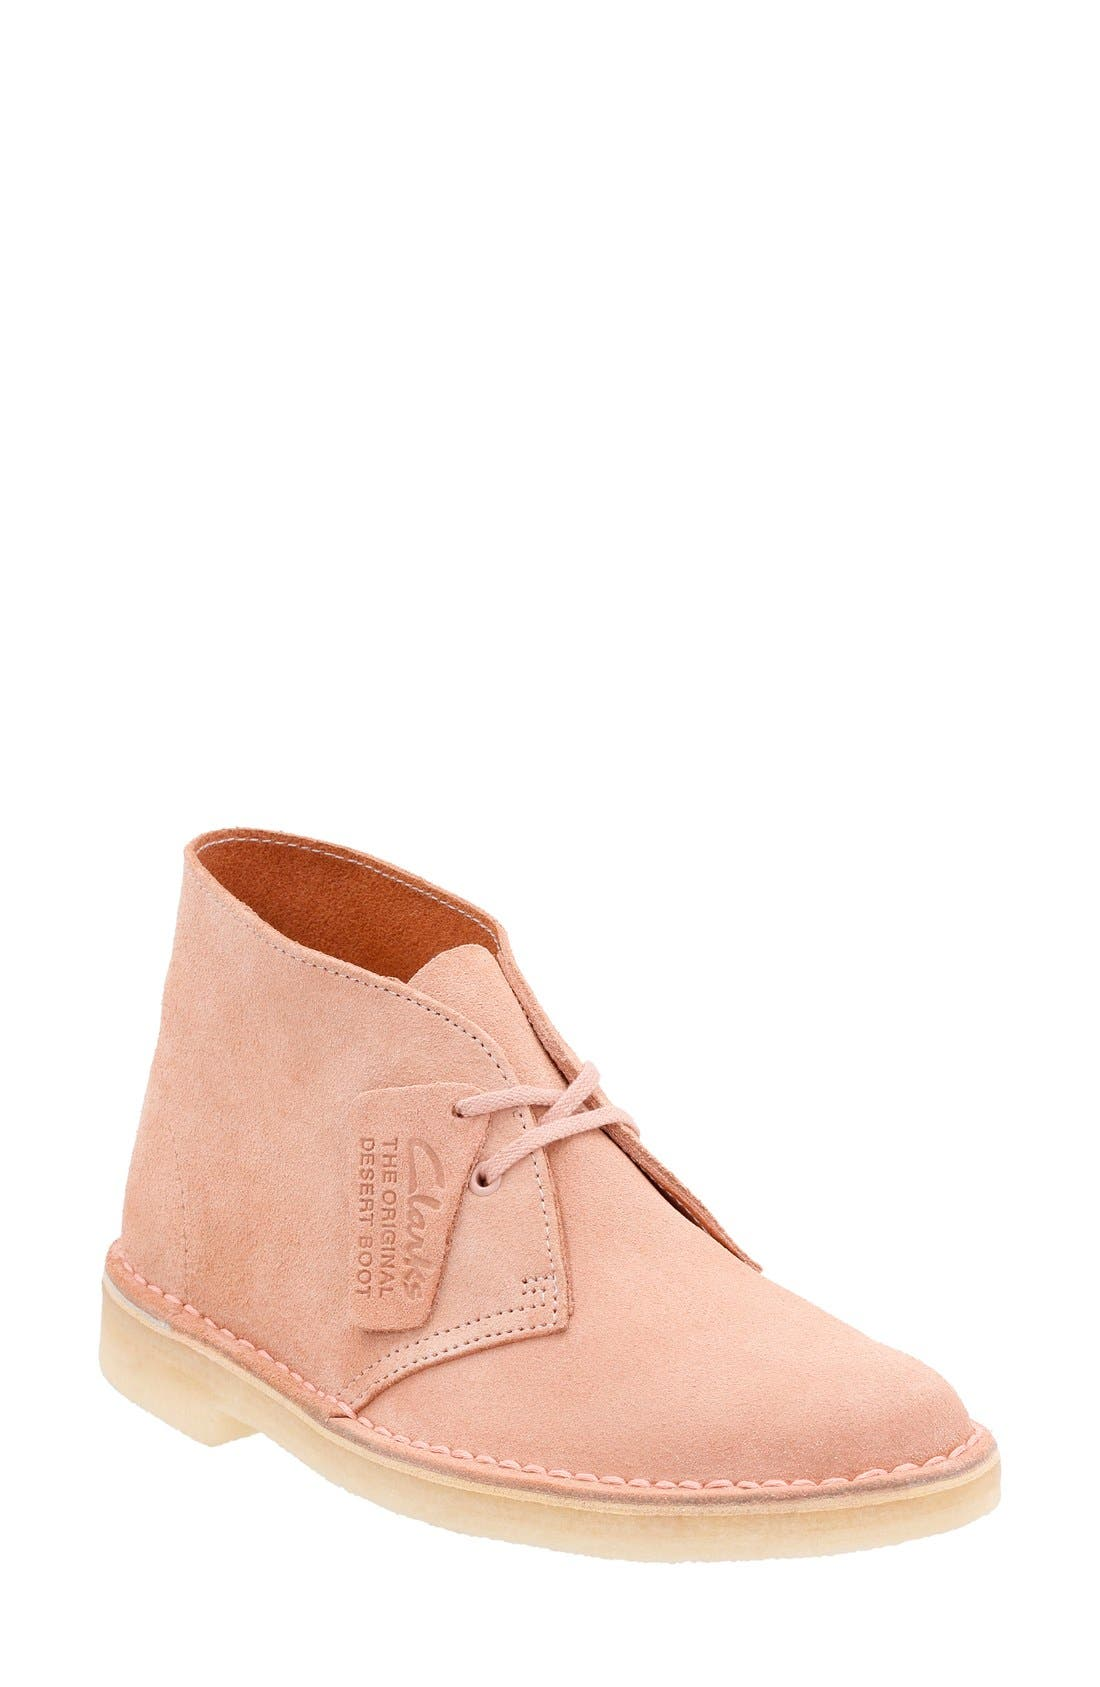 'Desert' ChukkaBoot,                             Main thumbnail 1, color,                             Dusty Pink Suede